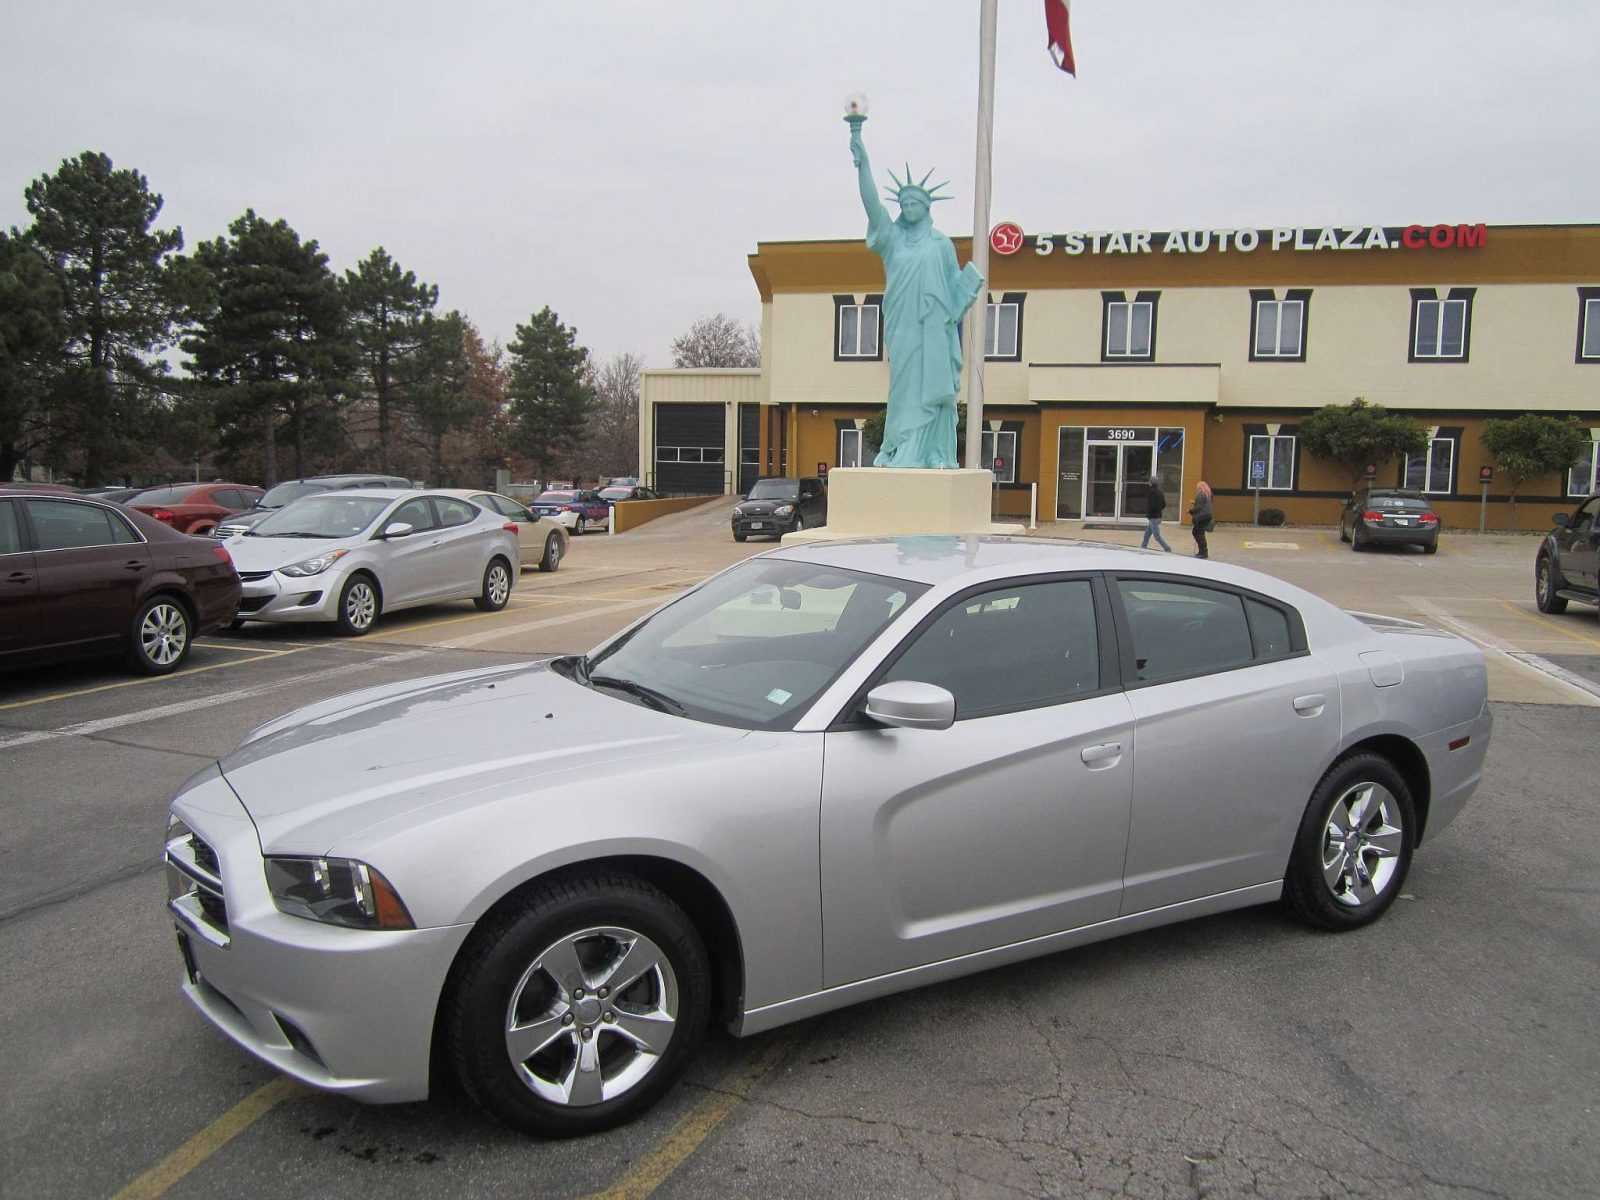 Low Mileage Cars for Sale in St. Louis, MO